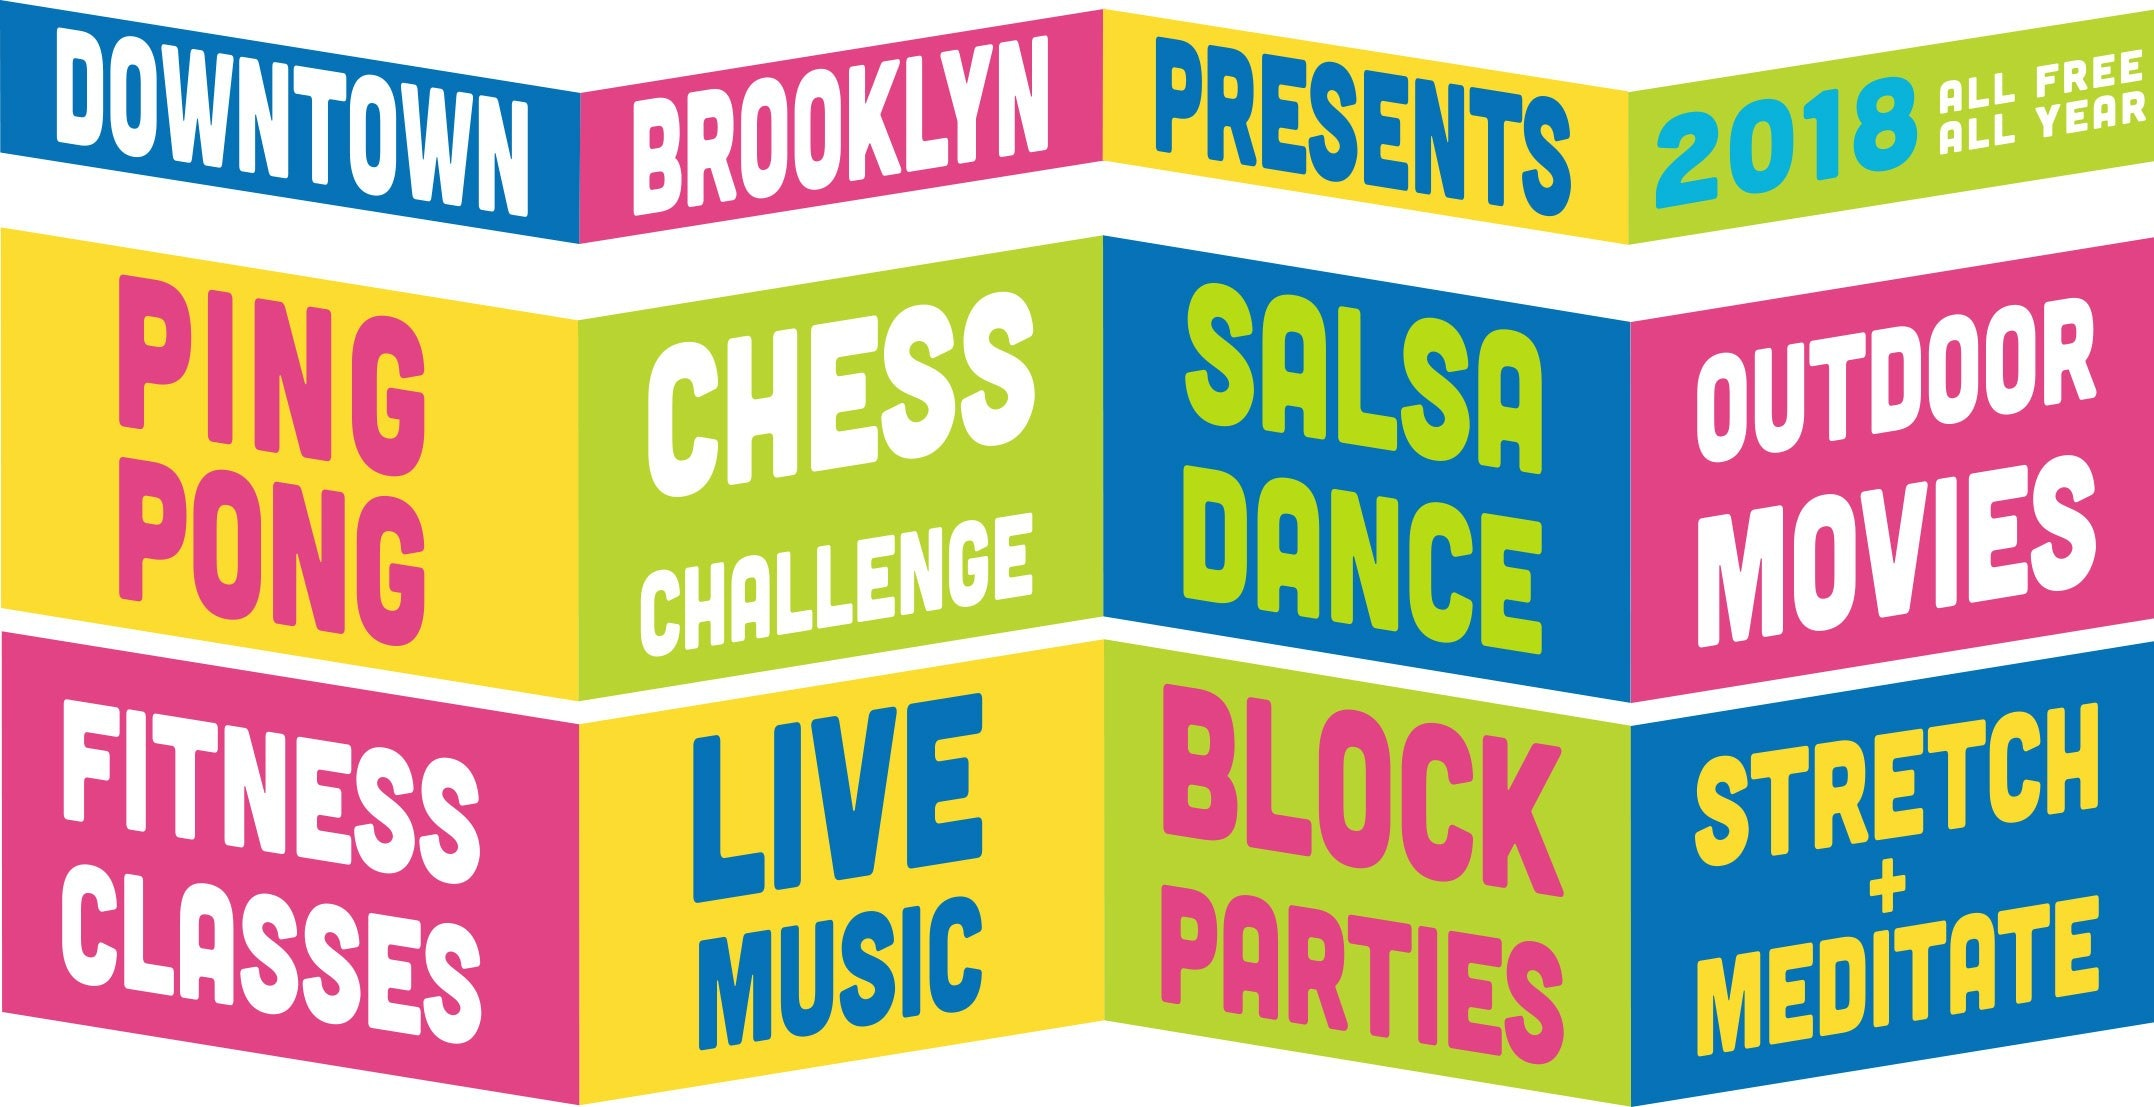 Free events in brooklyn